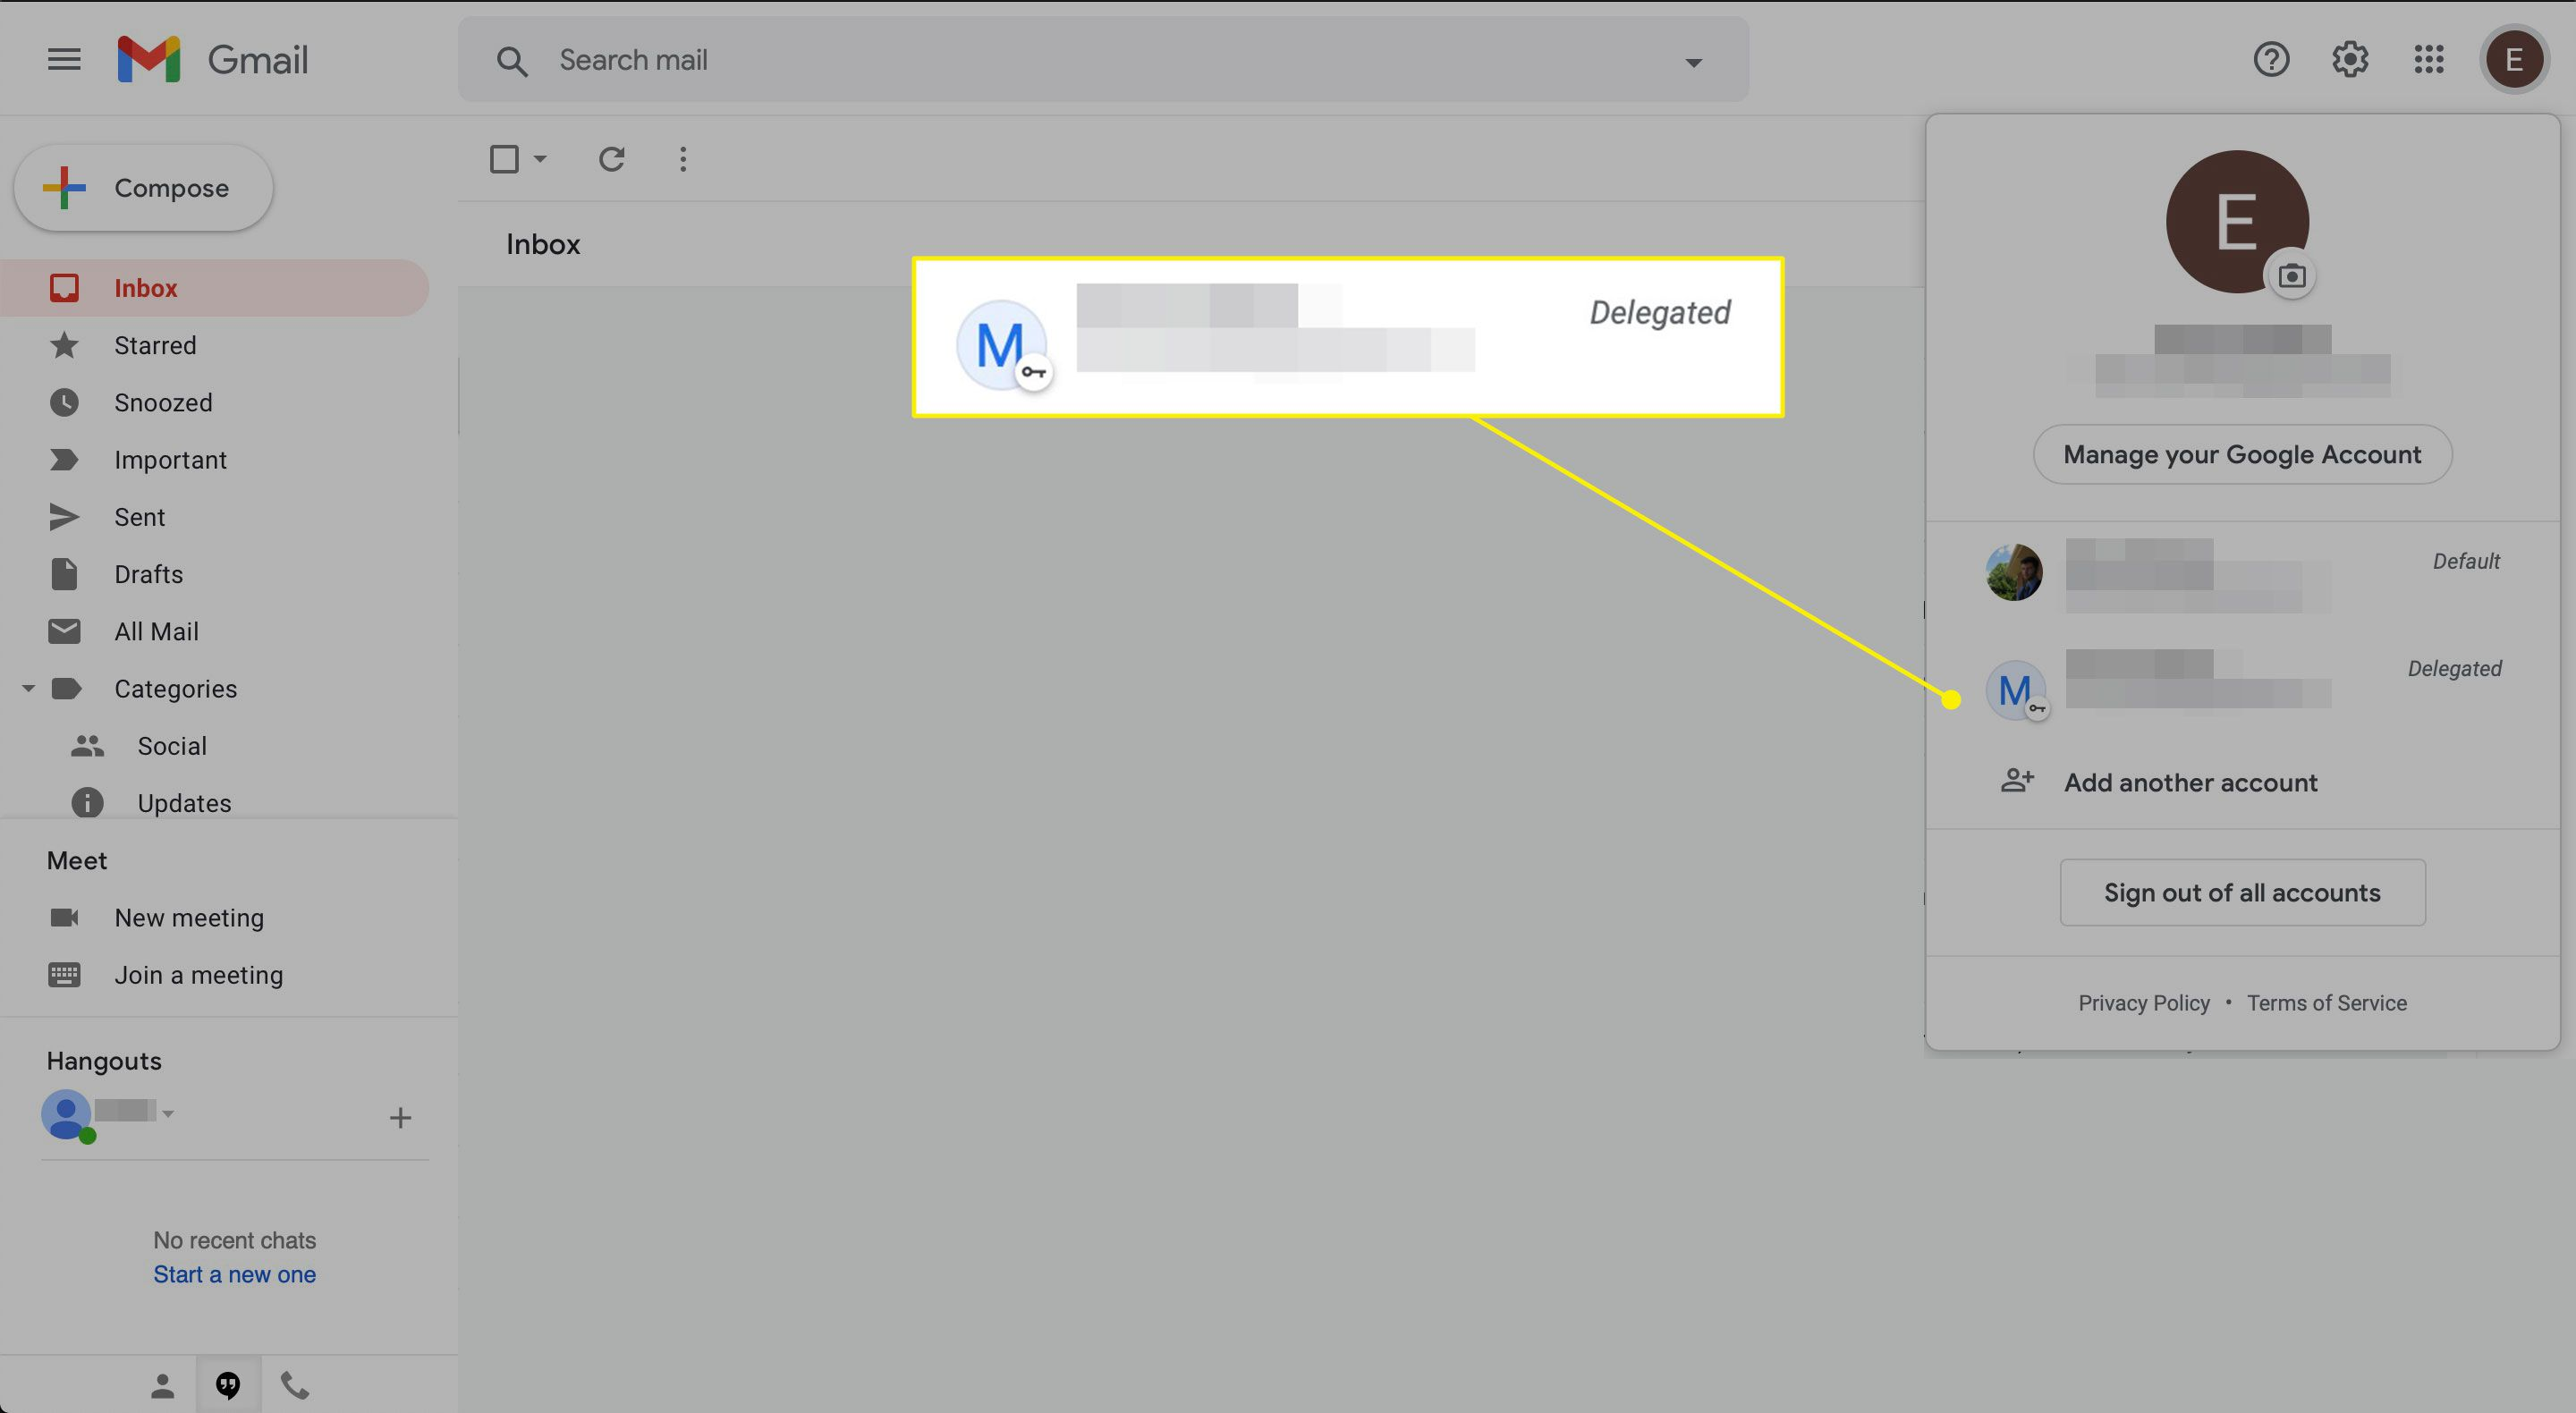 A delegated account in Gmail